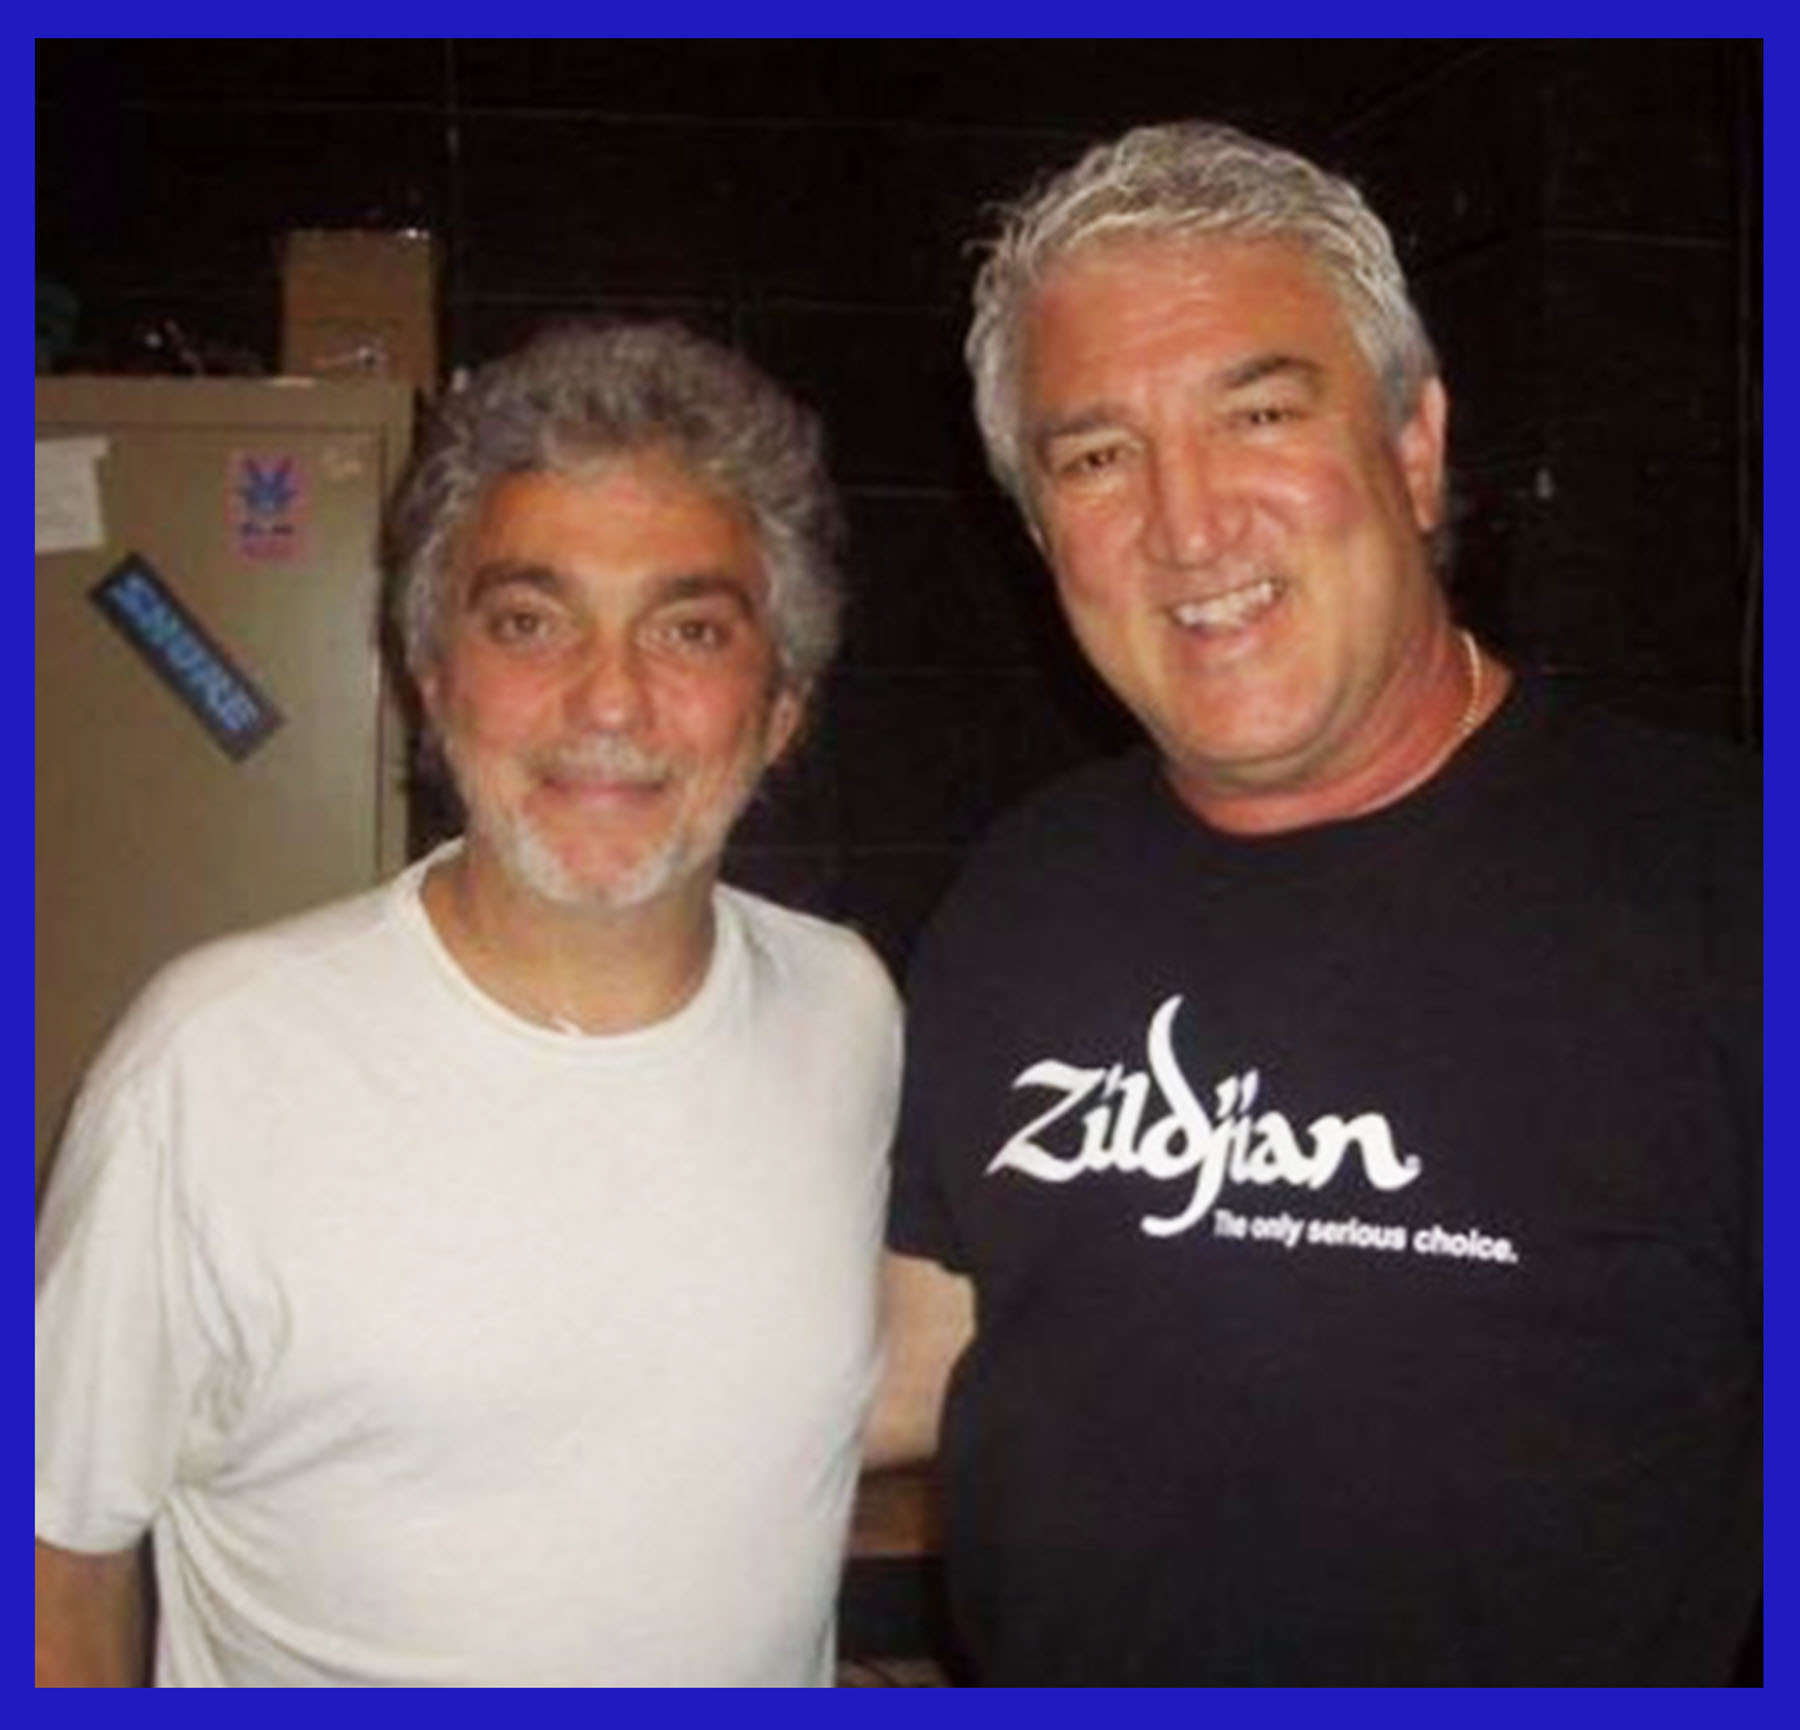 Joe-Corsello-Steve-Gadd.jpg